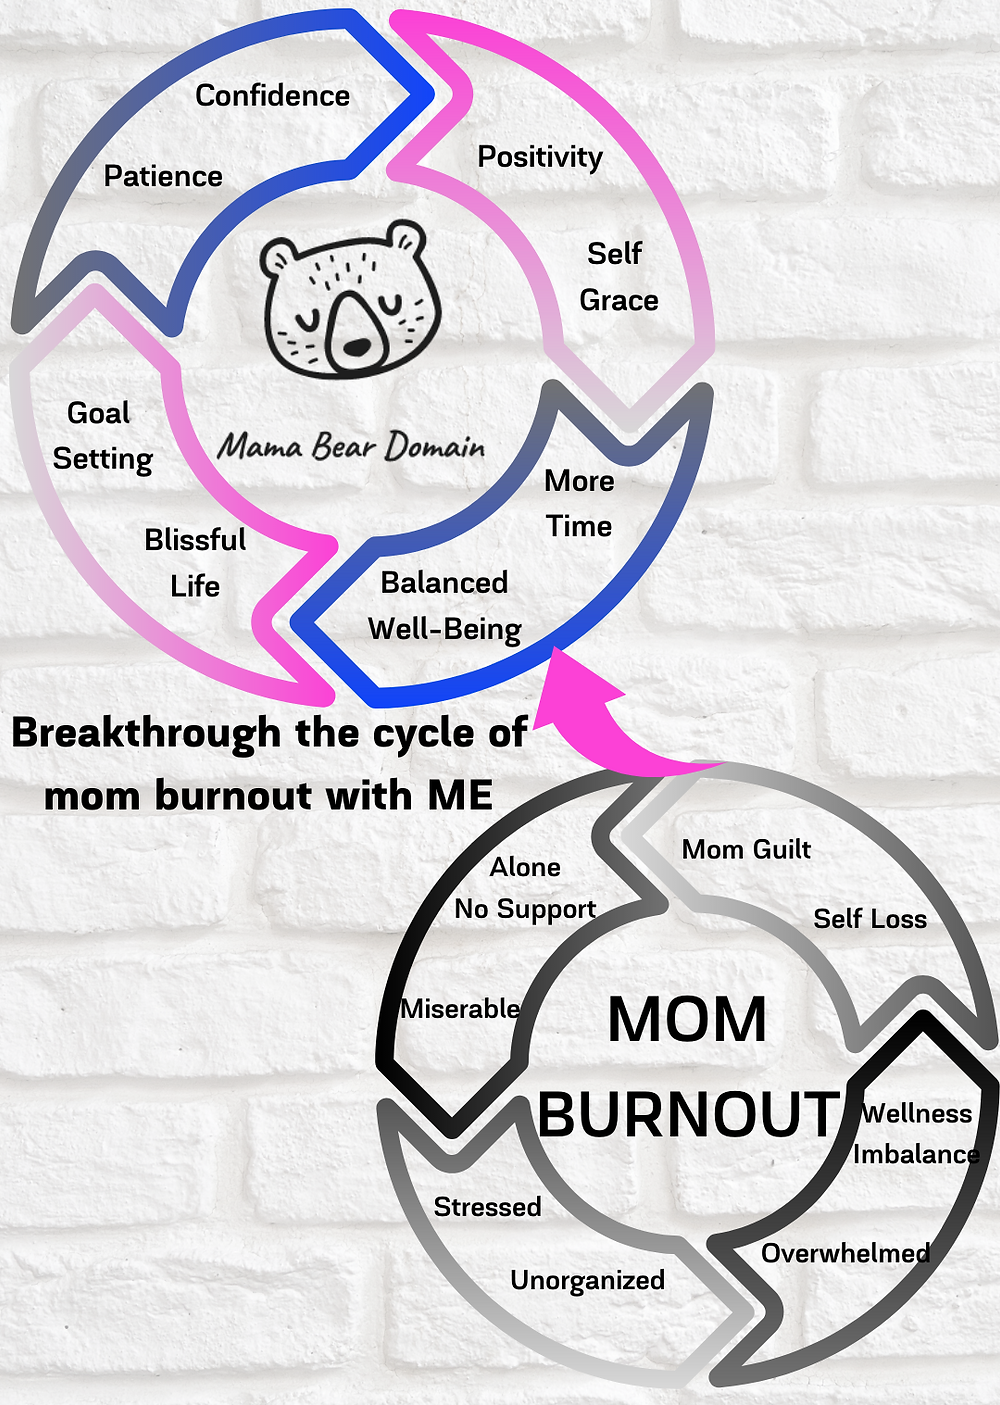 Helping moms with mom burnout struggling with being overwhelmed, lack of confidence, and self loss.